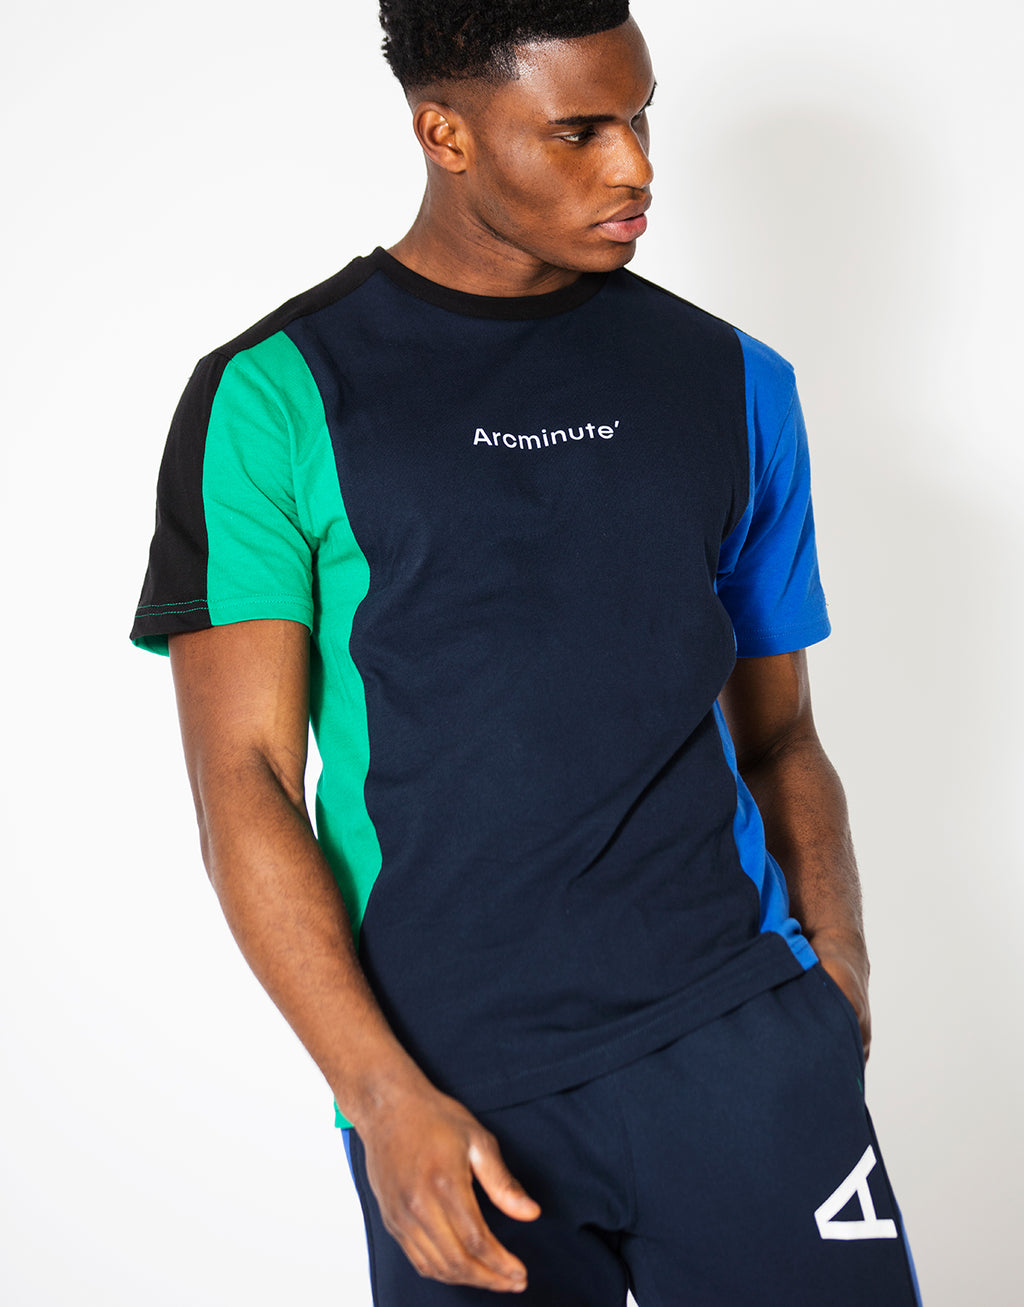 Mcnair T-Shirt Striped - Arcminute